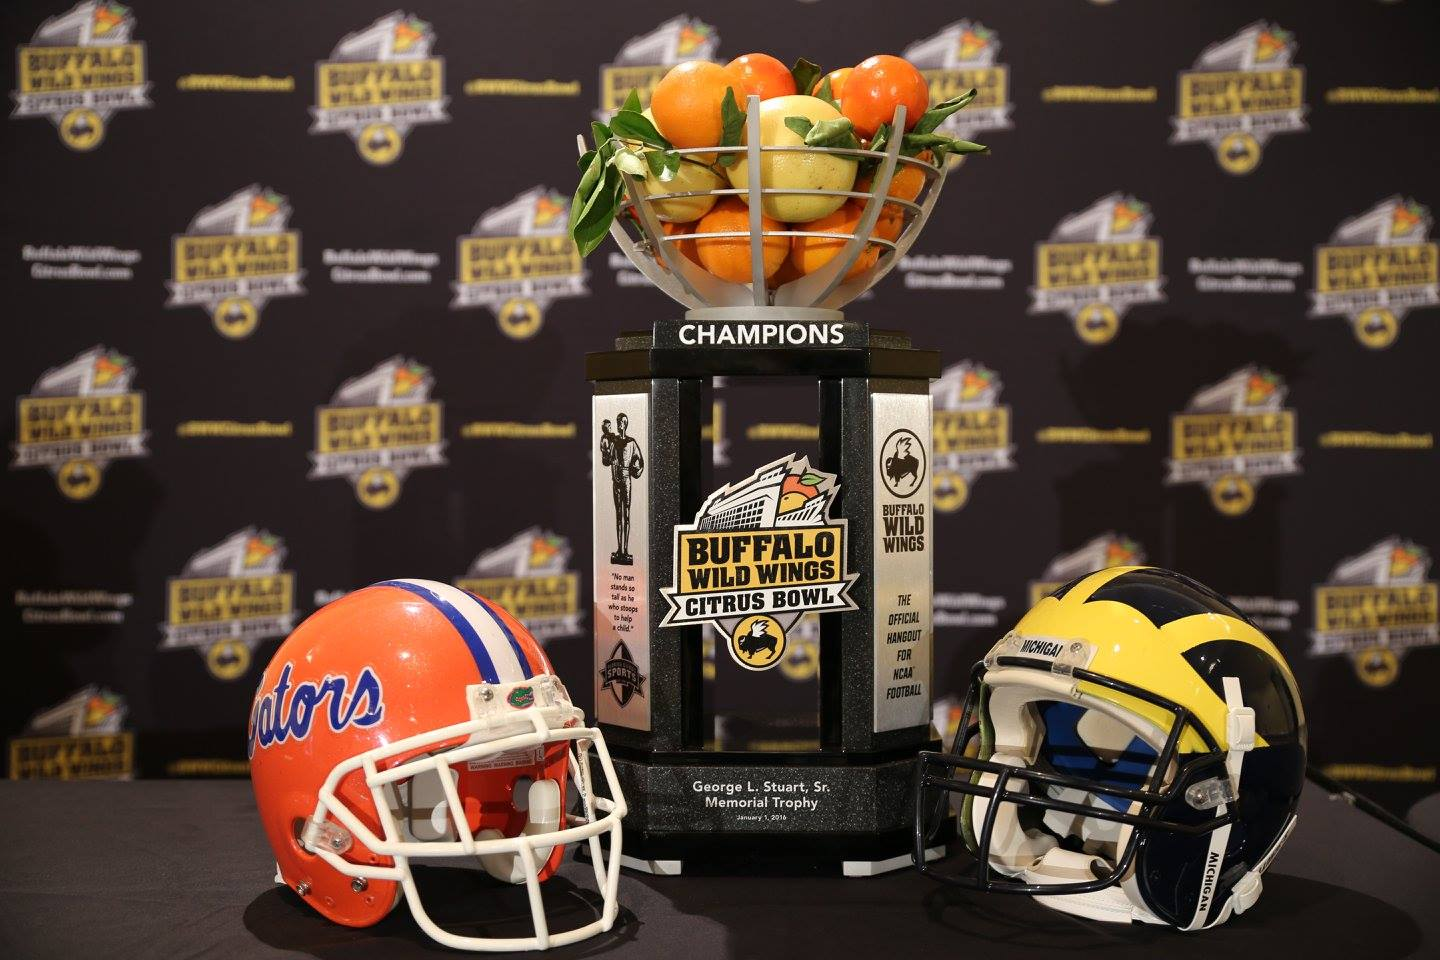 BUFFALO WILD WINGS CITRUS BOWL: University of Florida and University of Michigan fought for the trophy at Orlando Citrus Bowl January 1, 2016. Photo: Mellissa Thomas/Florida National News.